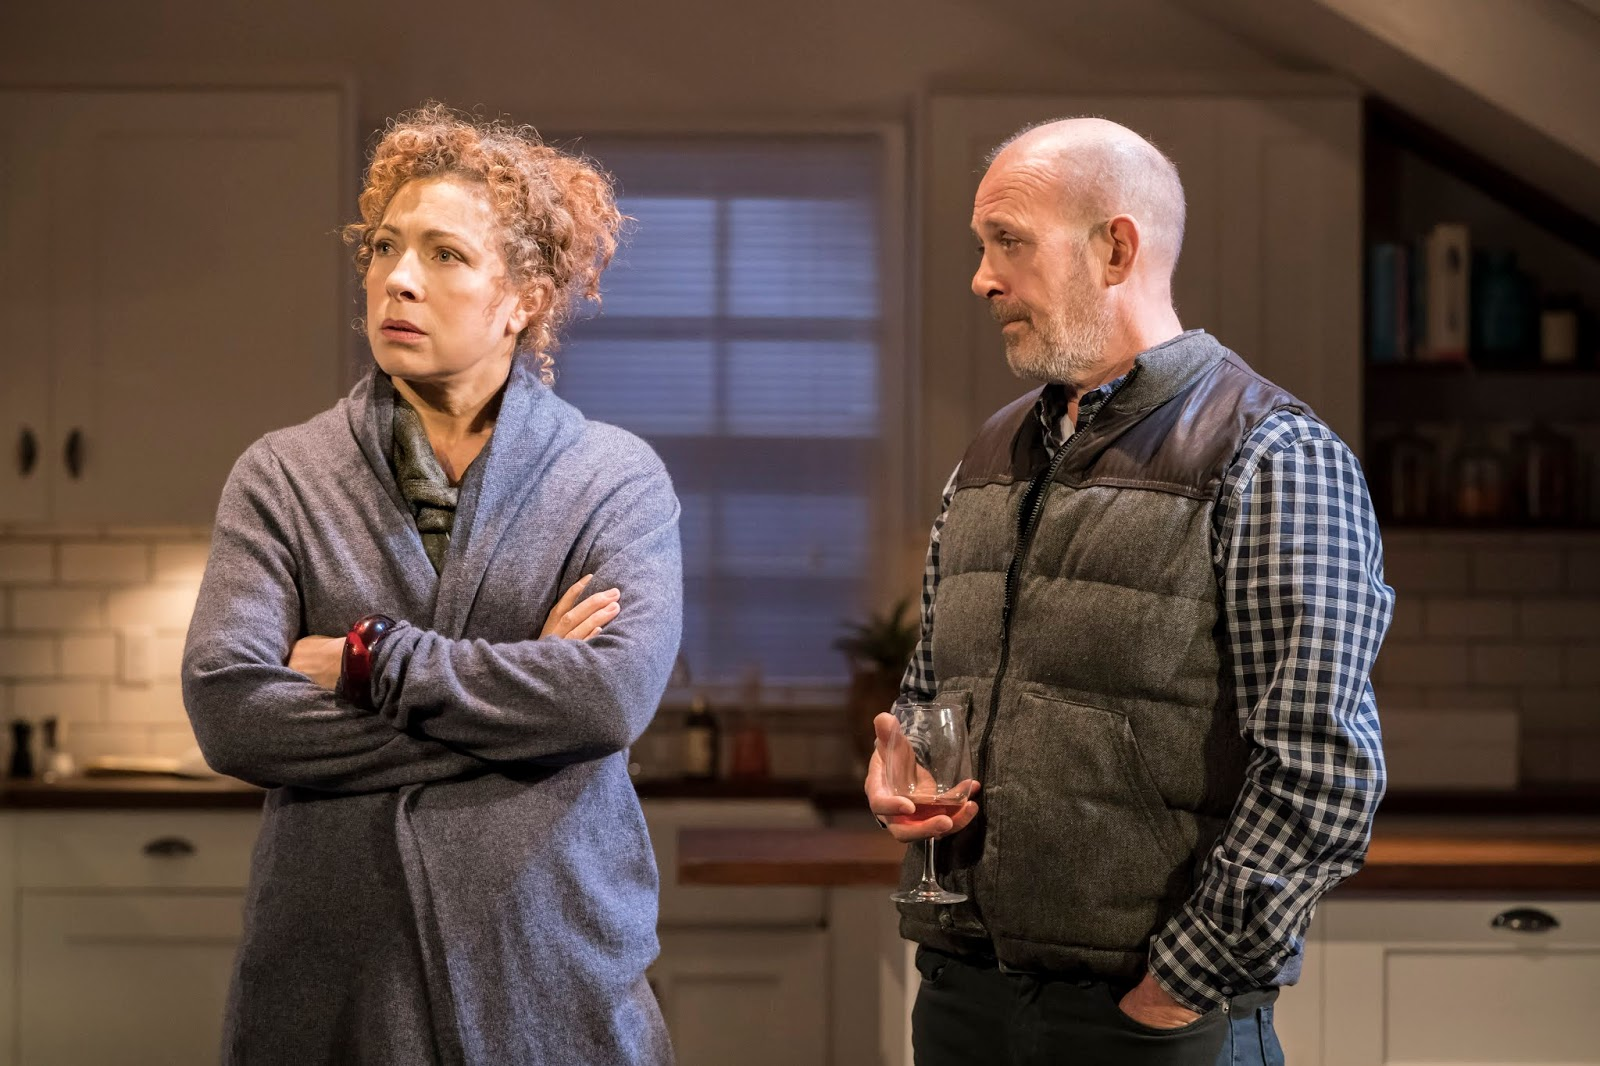 Actors Alex Kingston and Andrew Woodall act out a scene from the play Admissions